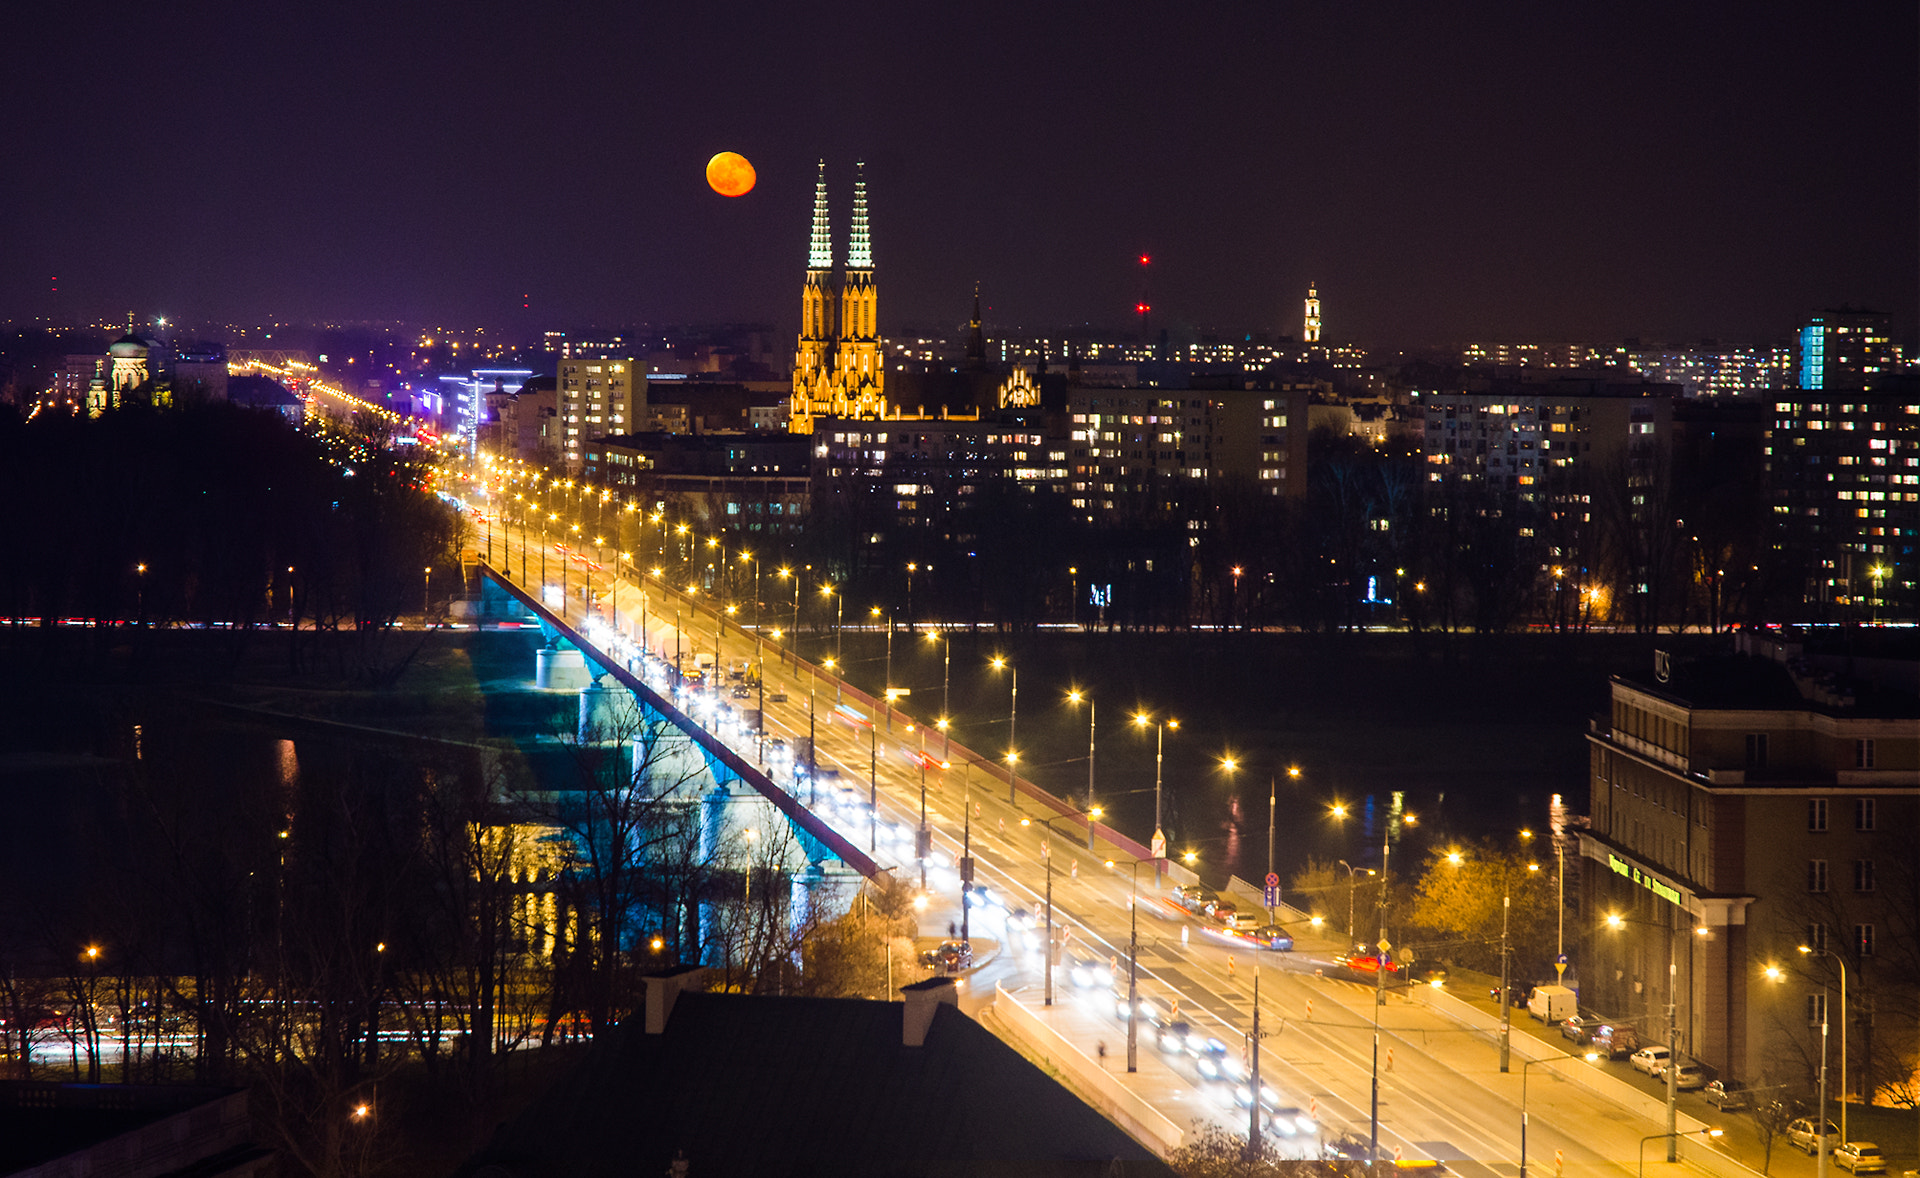 Photograph Moon Rising Over Warsaw by Mike Lesaski on 500px